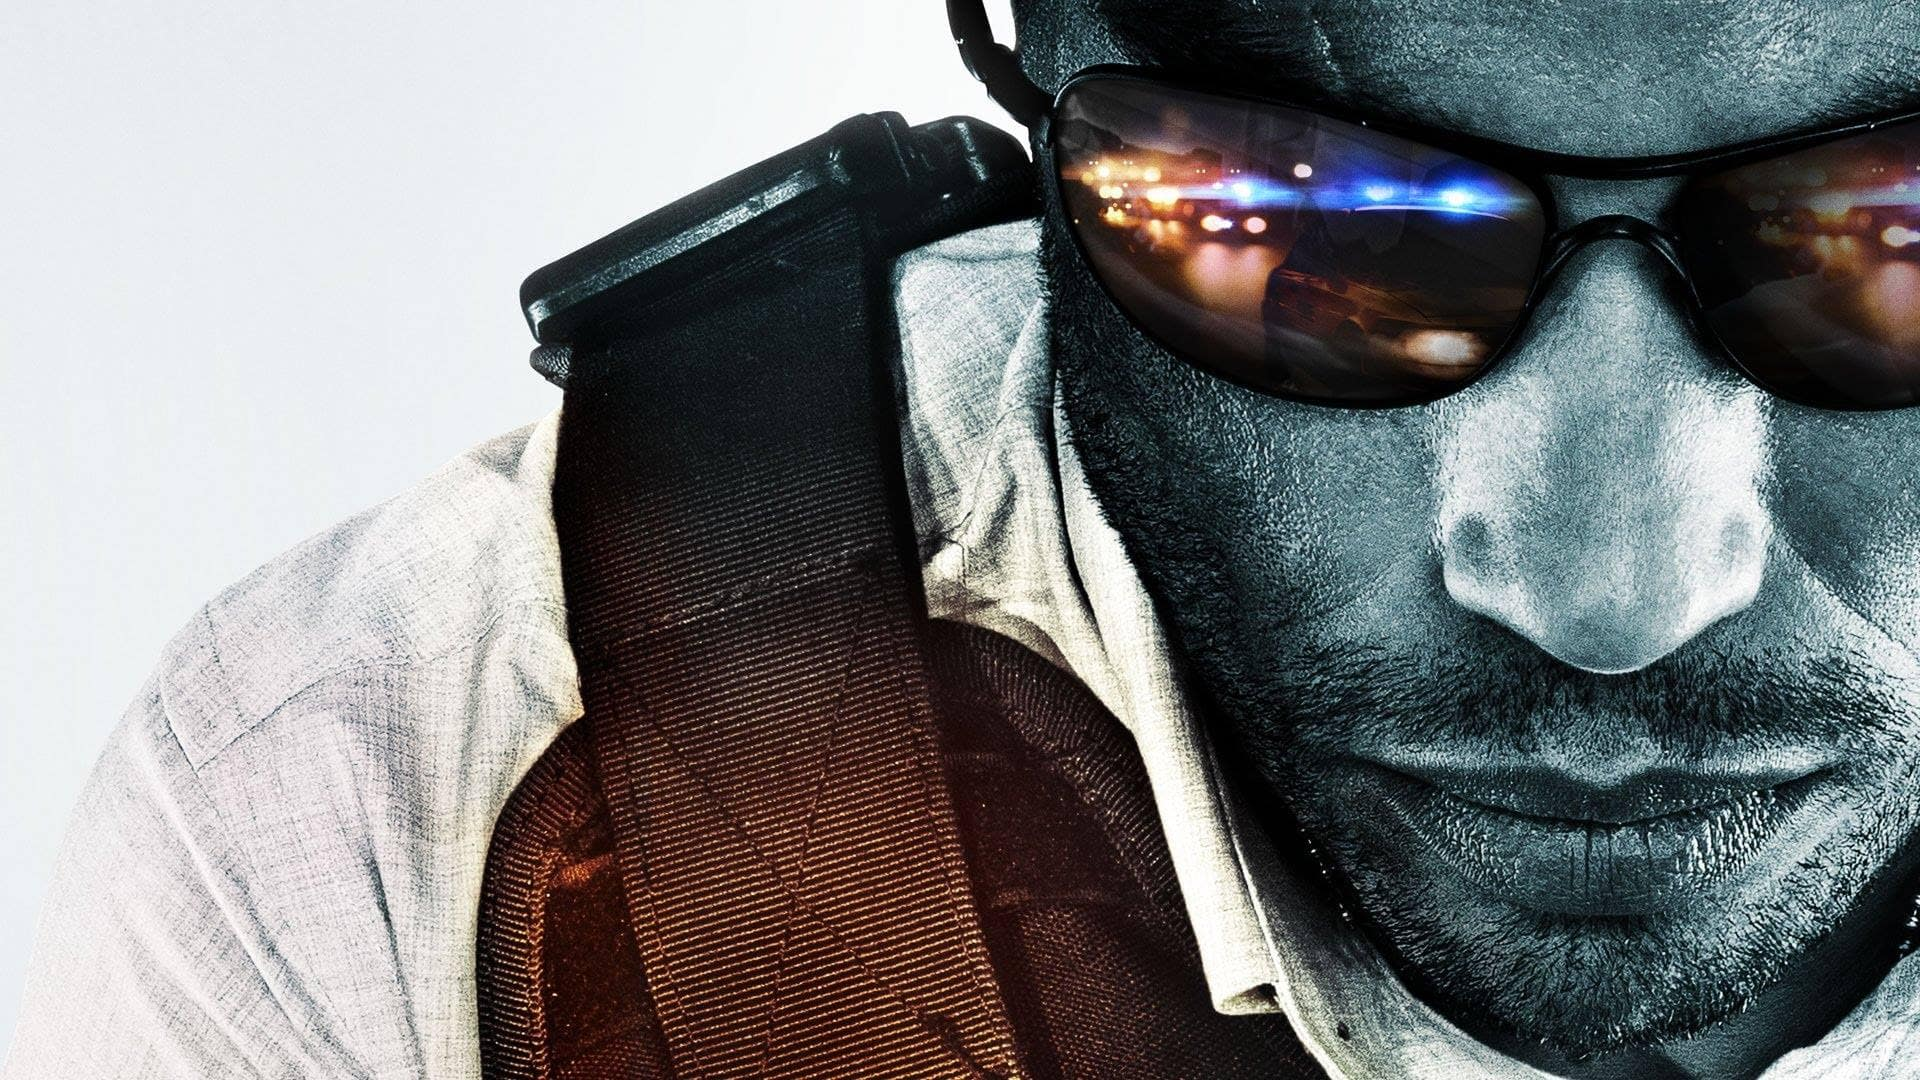 Battlefield Hardline - Cop Close Up